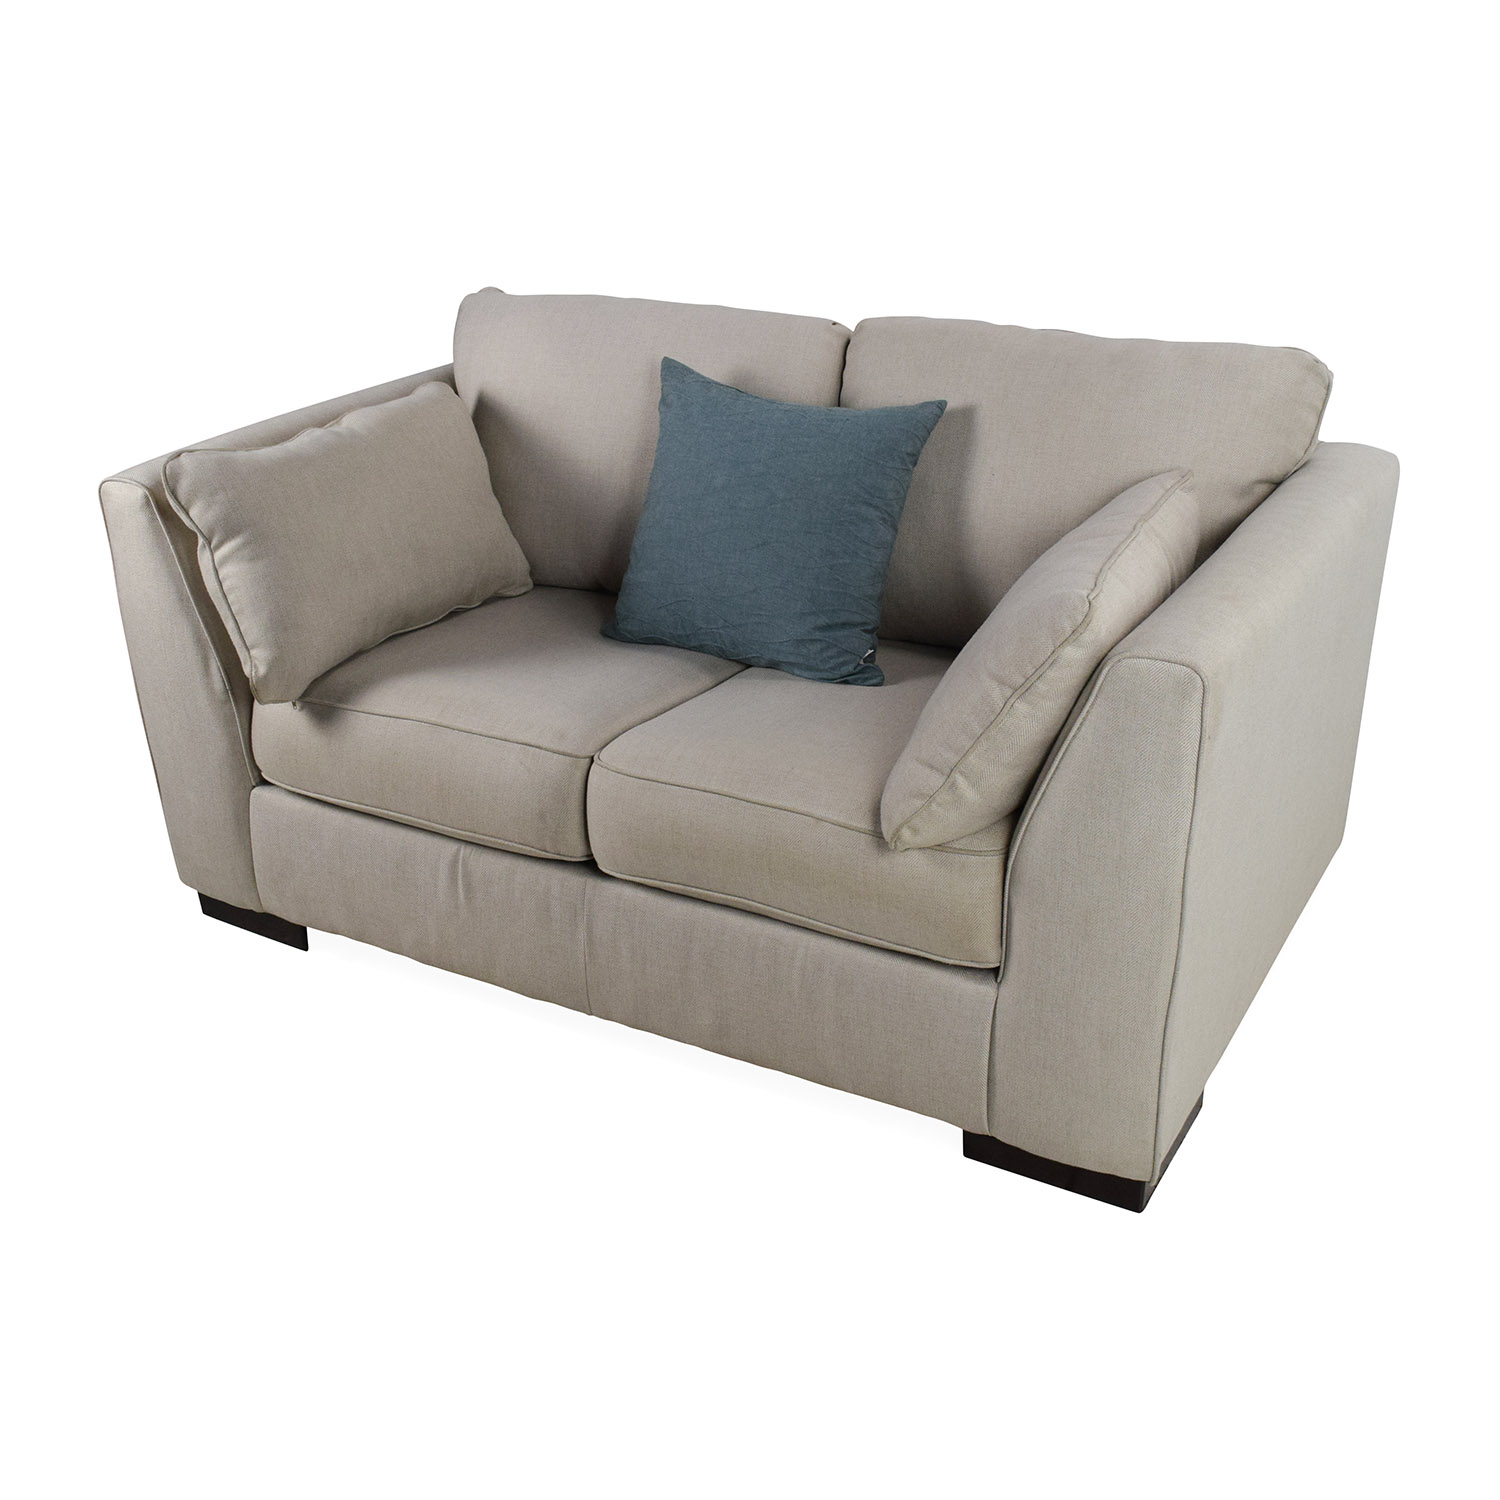 75 Off Ashley Furniture Ashley Furniture Pierin Loveseat Sofas